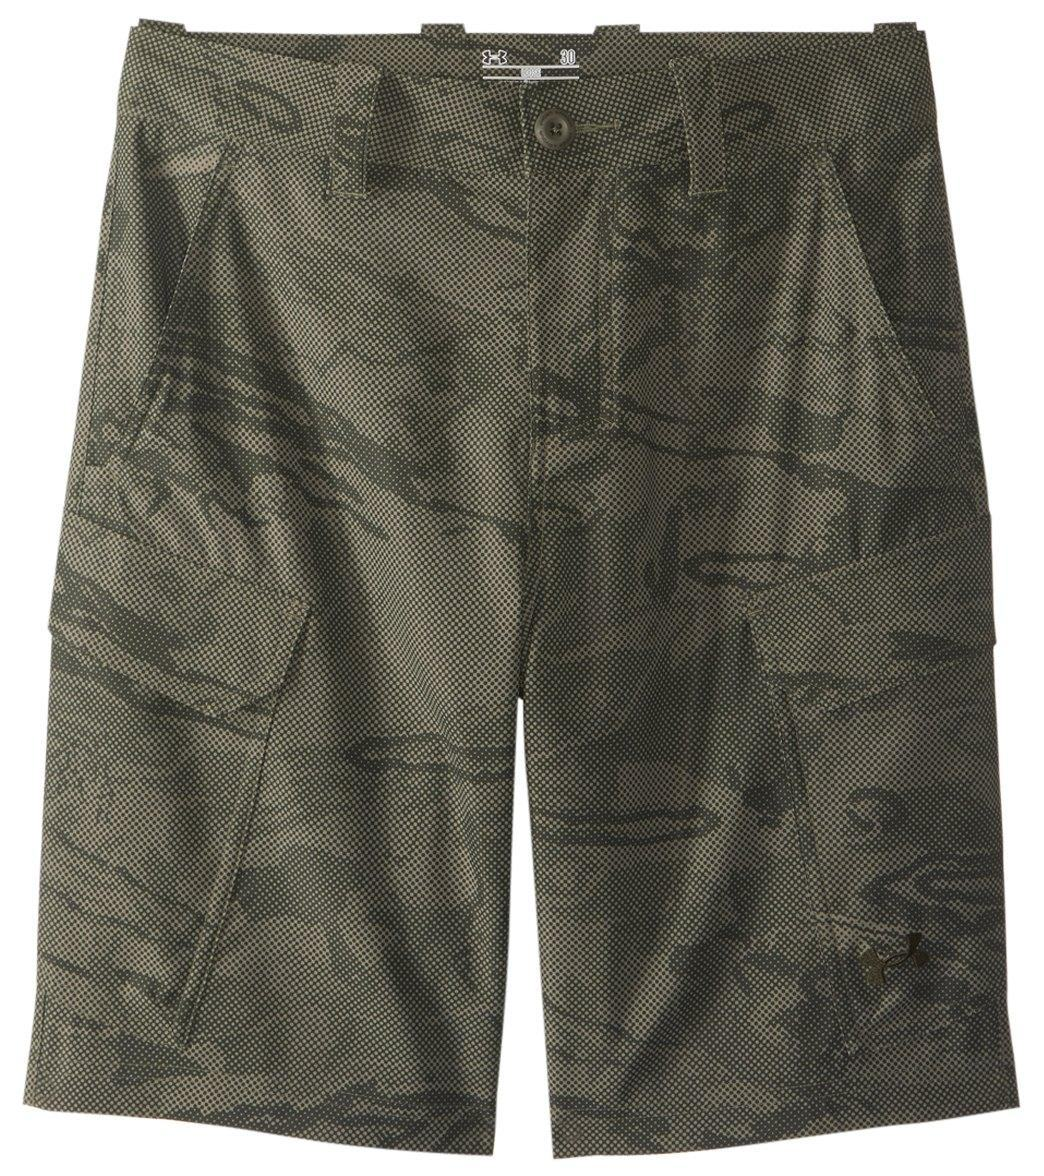 f82472a880 Under Armour Men's Fish Hunter Cargo Shorts at SwimOutlet.com - Free  Shipping